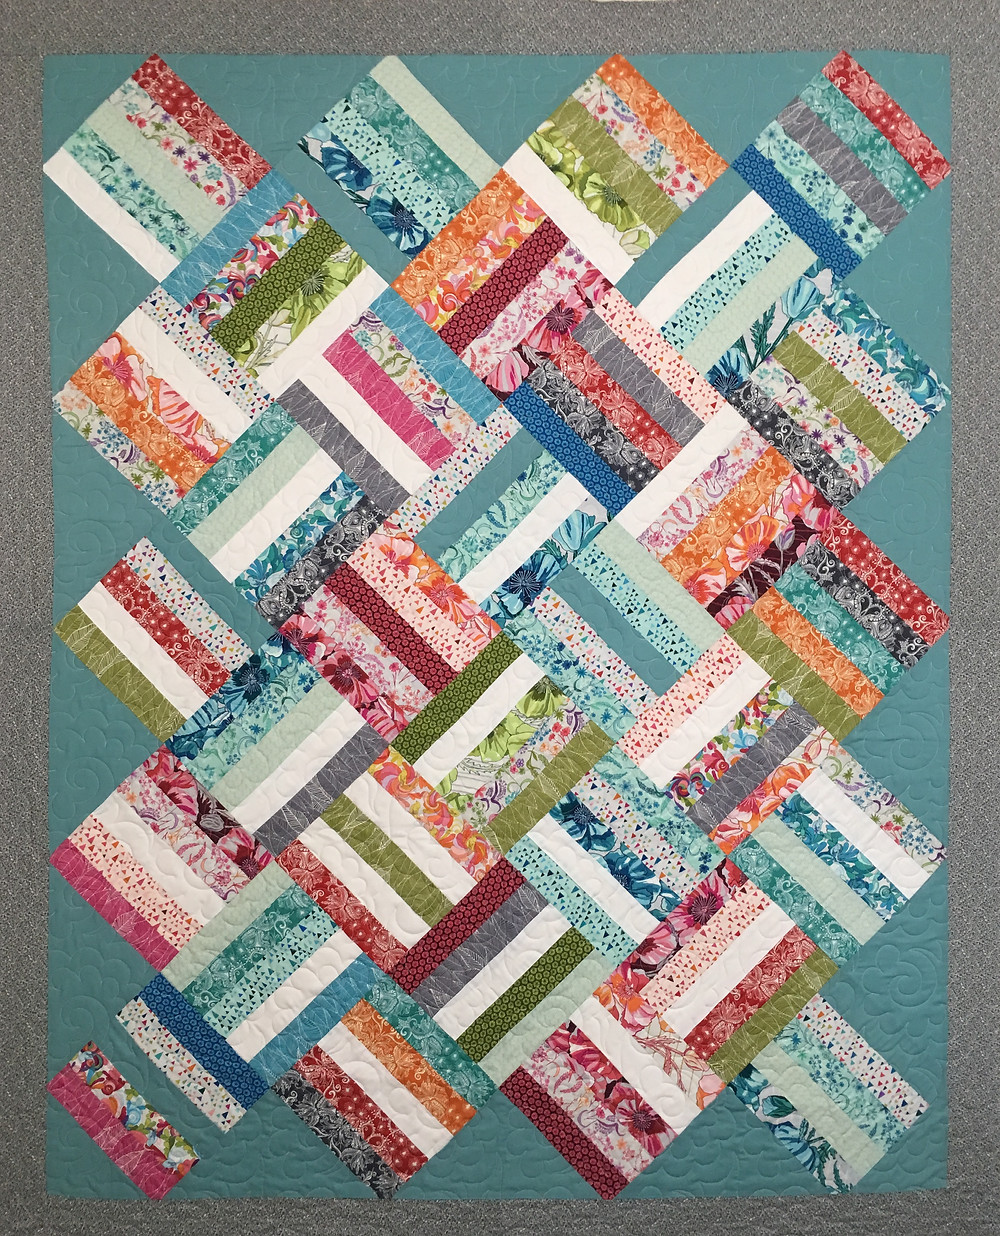 Jelly Roll Squares on Point quilt by Melda Savage